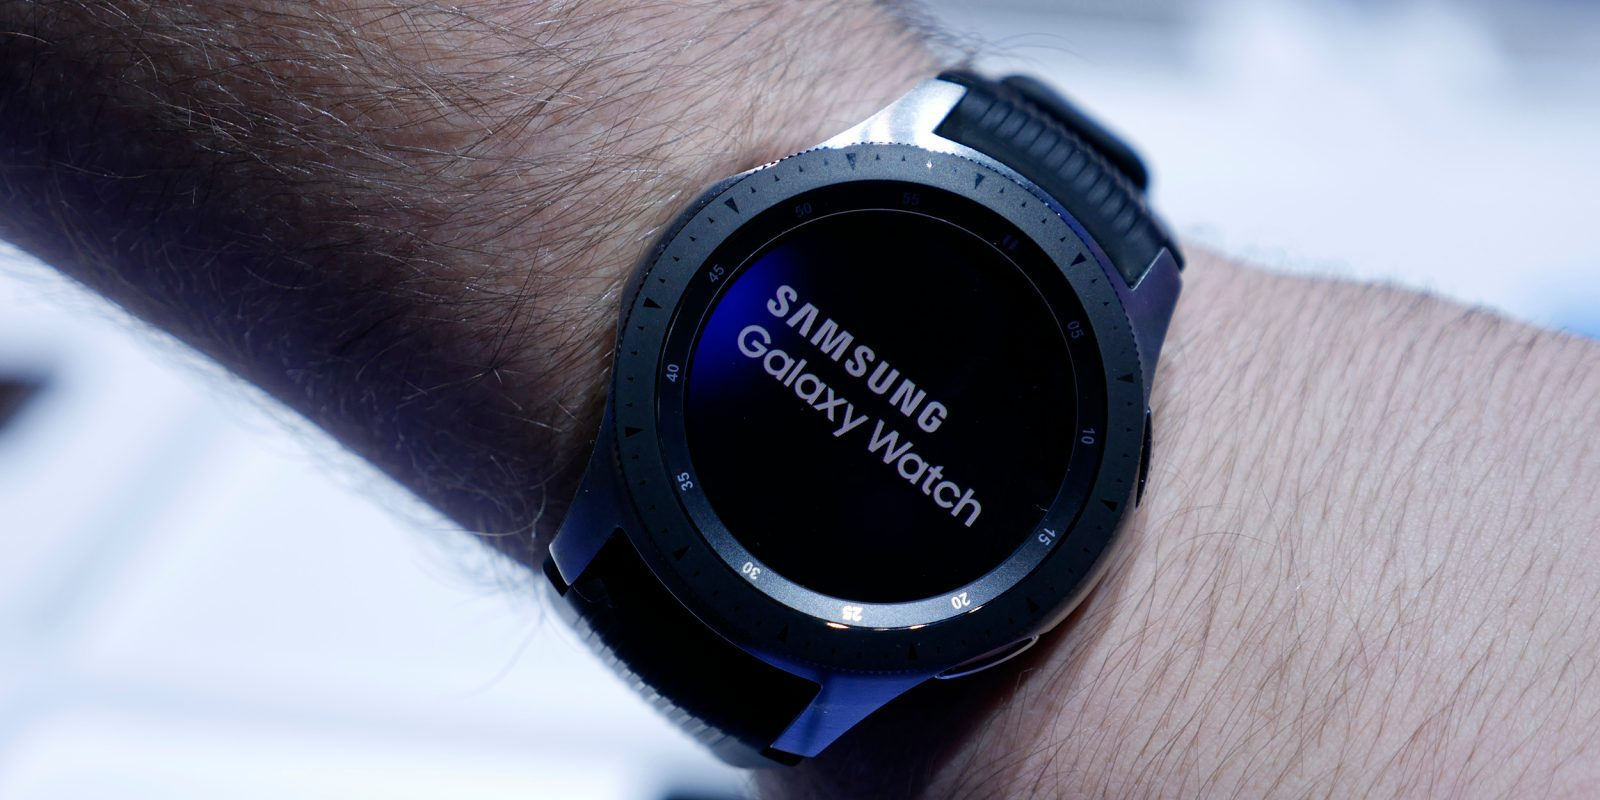 Samsung Galaxy Watch hands-on: The best Android smartwatch ...